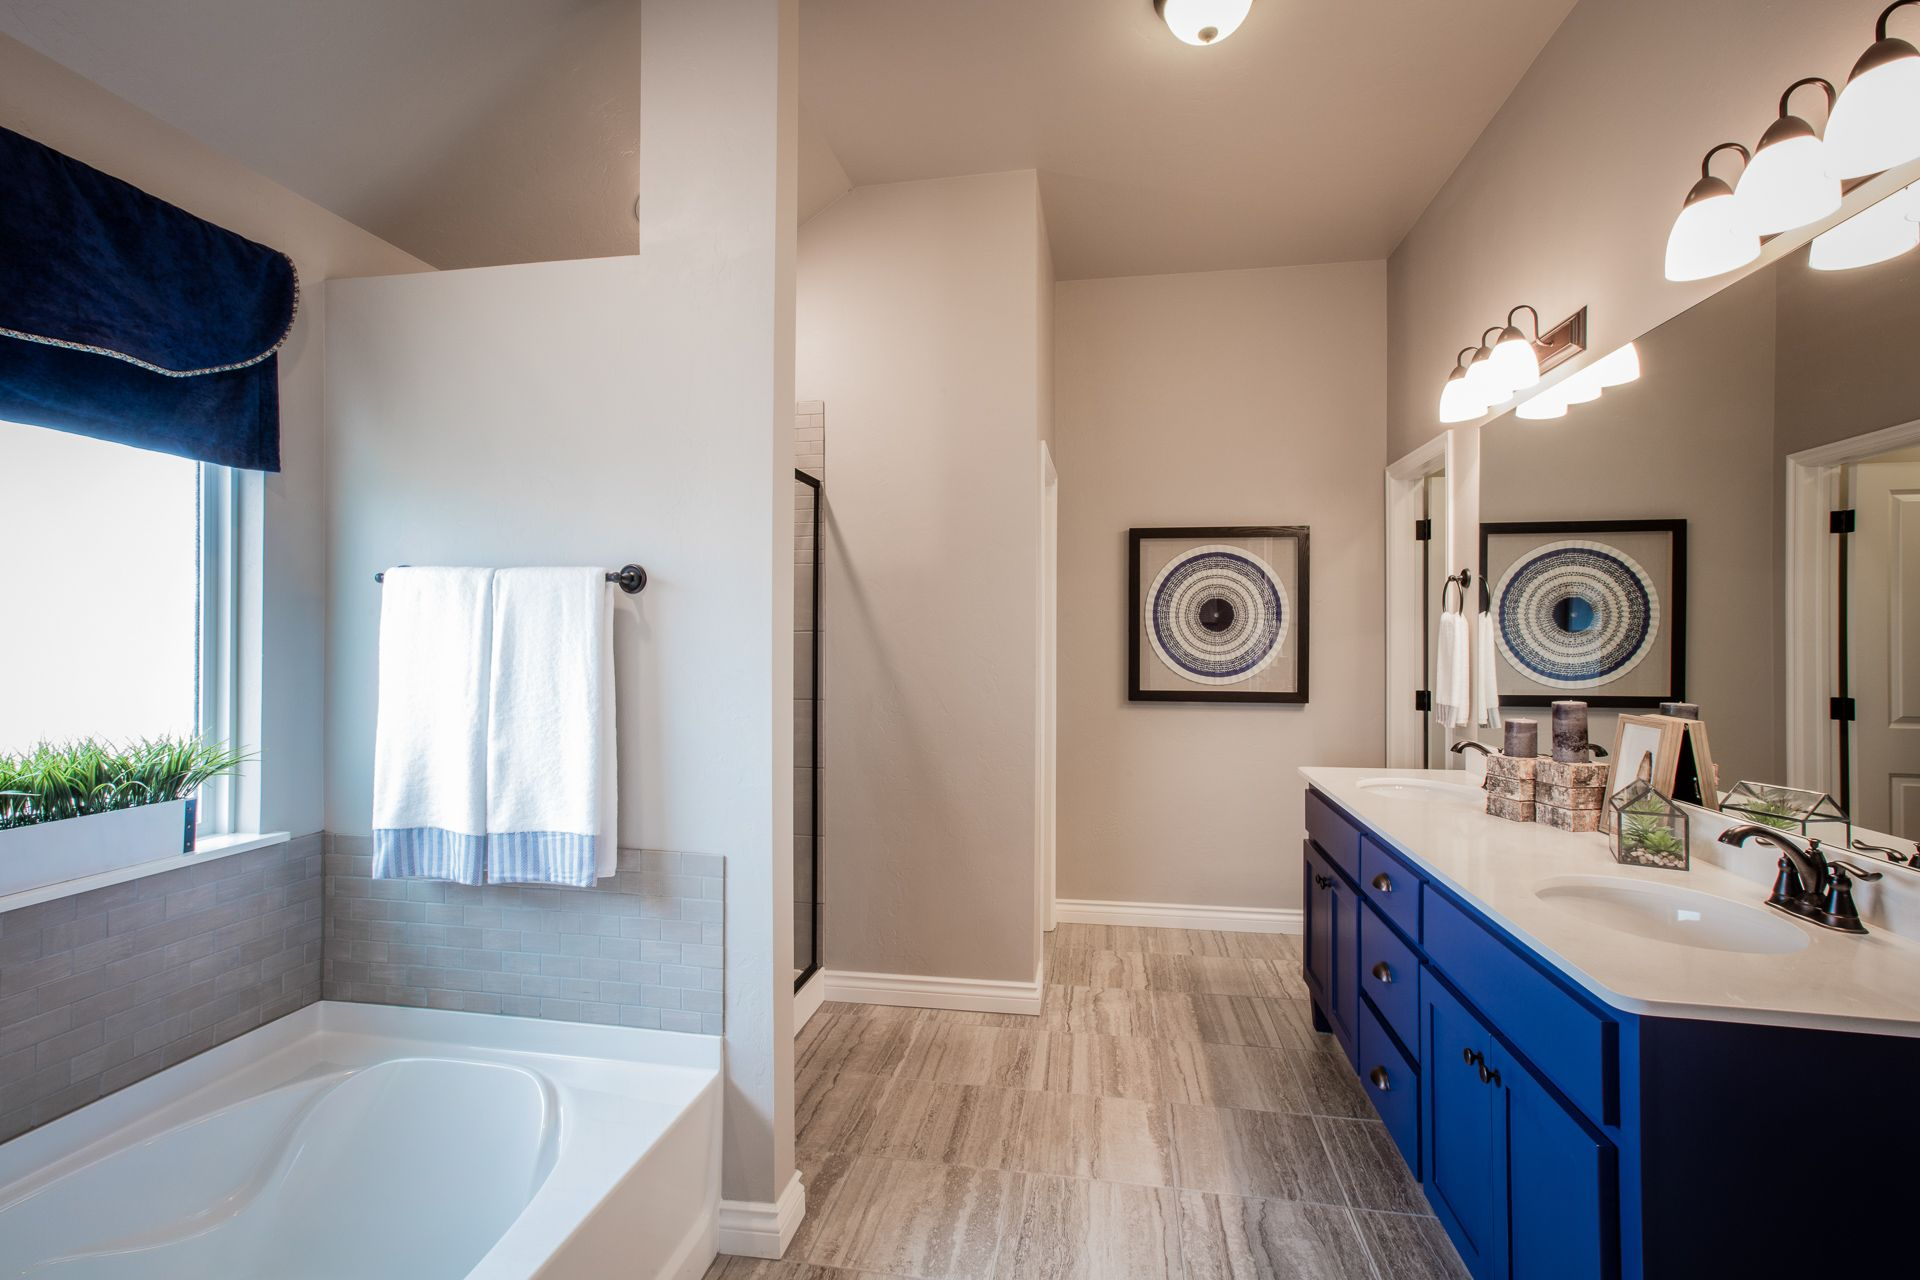 Bathroom featured in the Langley By Ideal Homes in Oklahoma City, OK